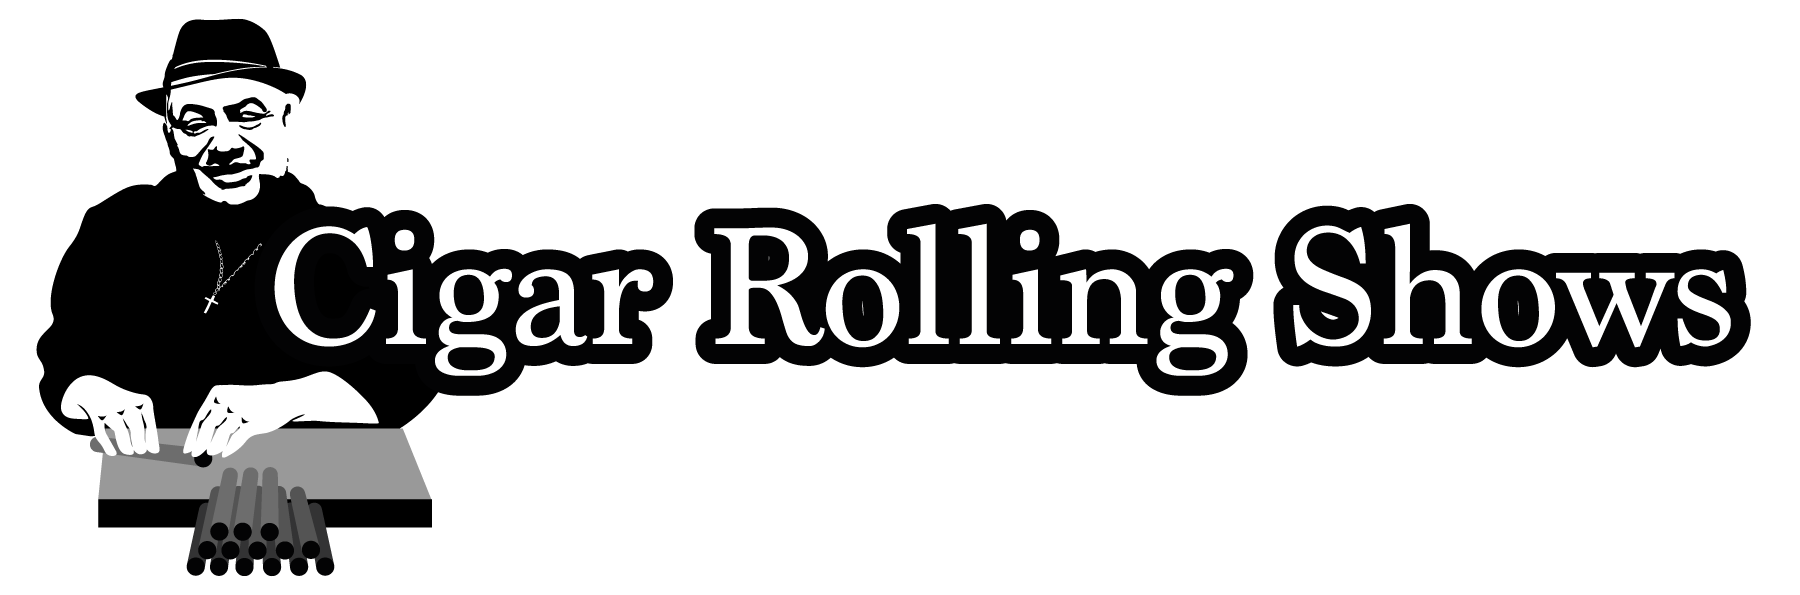 Cigar Rolling Shows